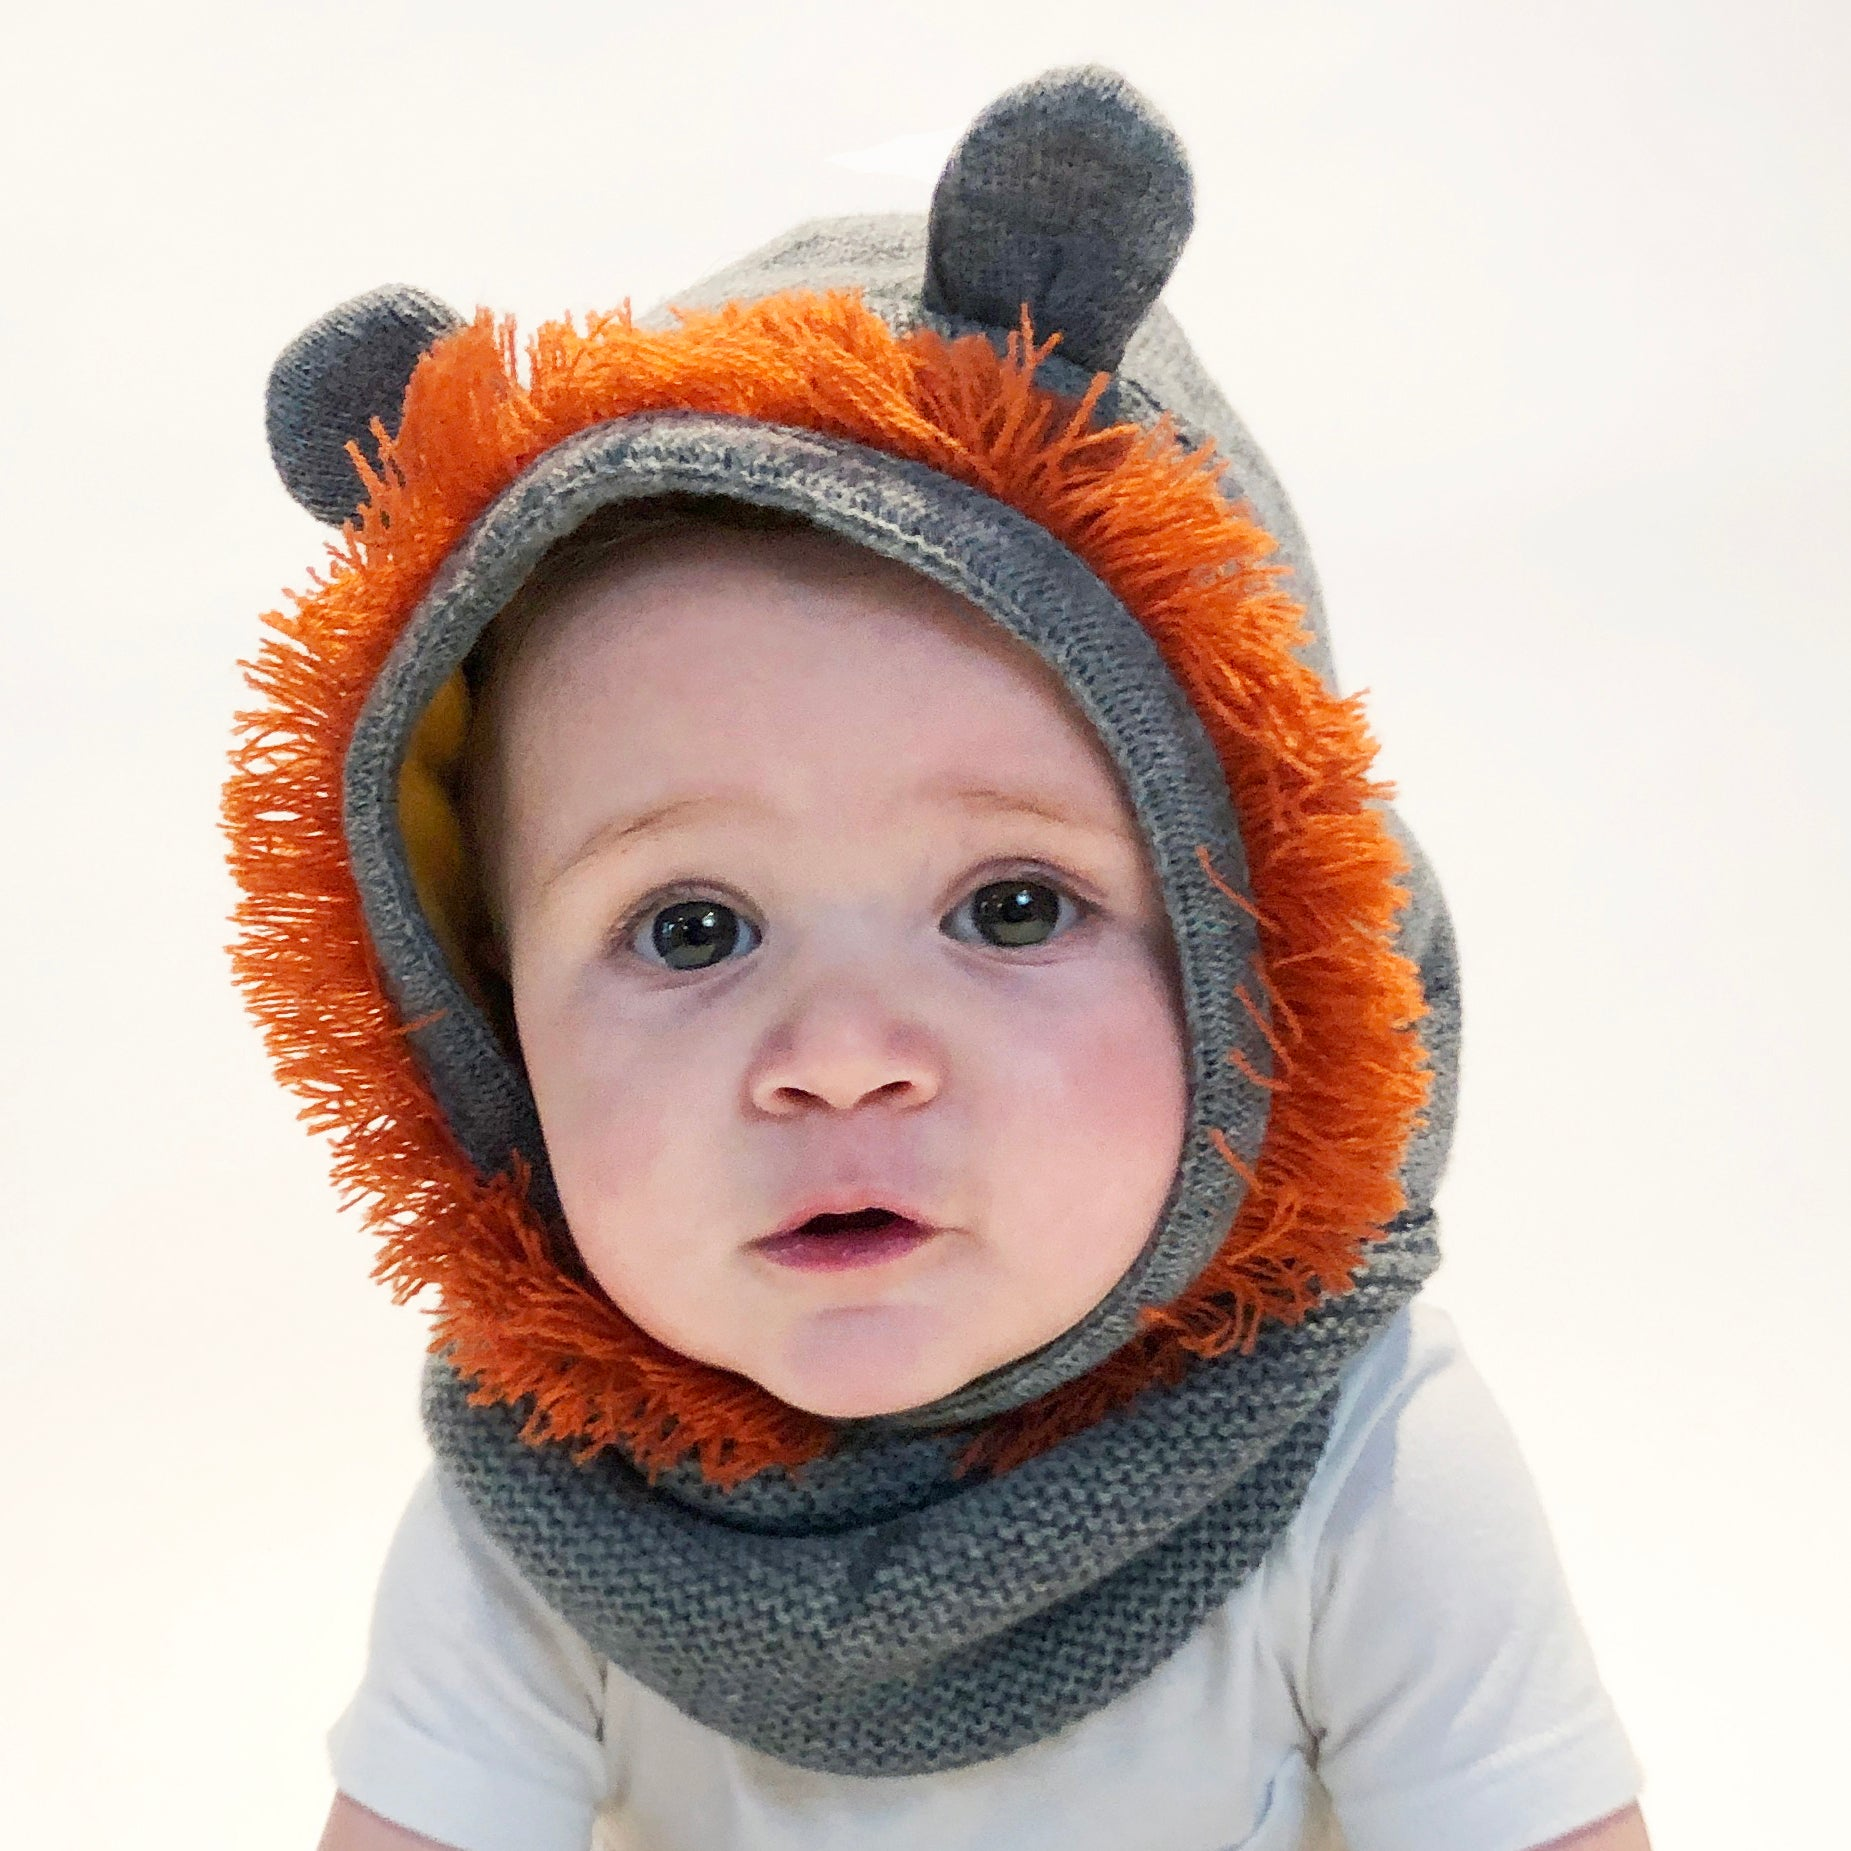 ZOOCCHINI Baby/Todder Knit Balaclava Hat - Leo the Lion